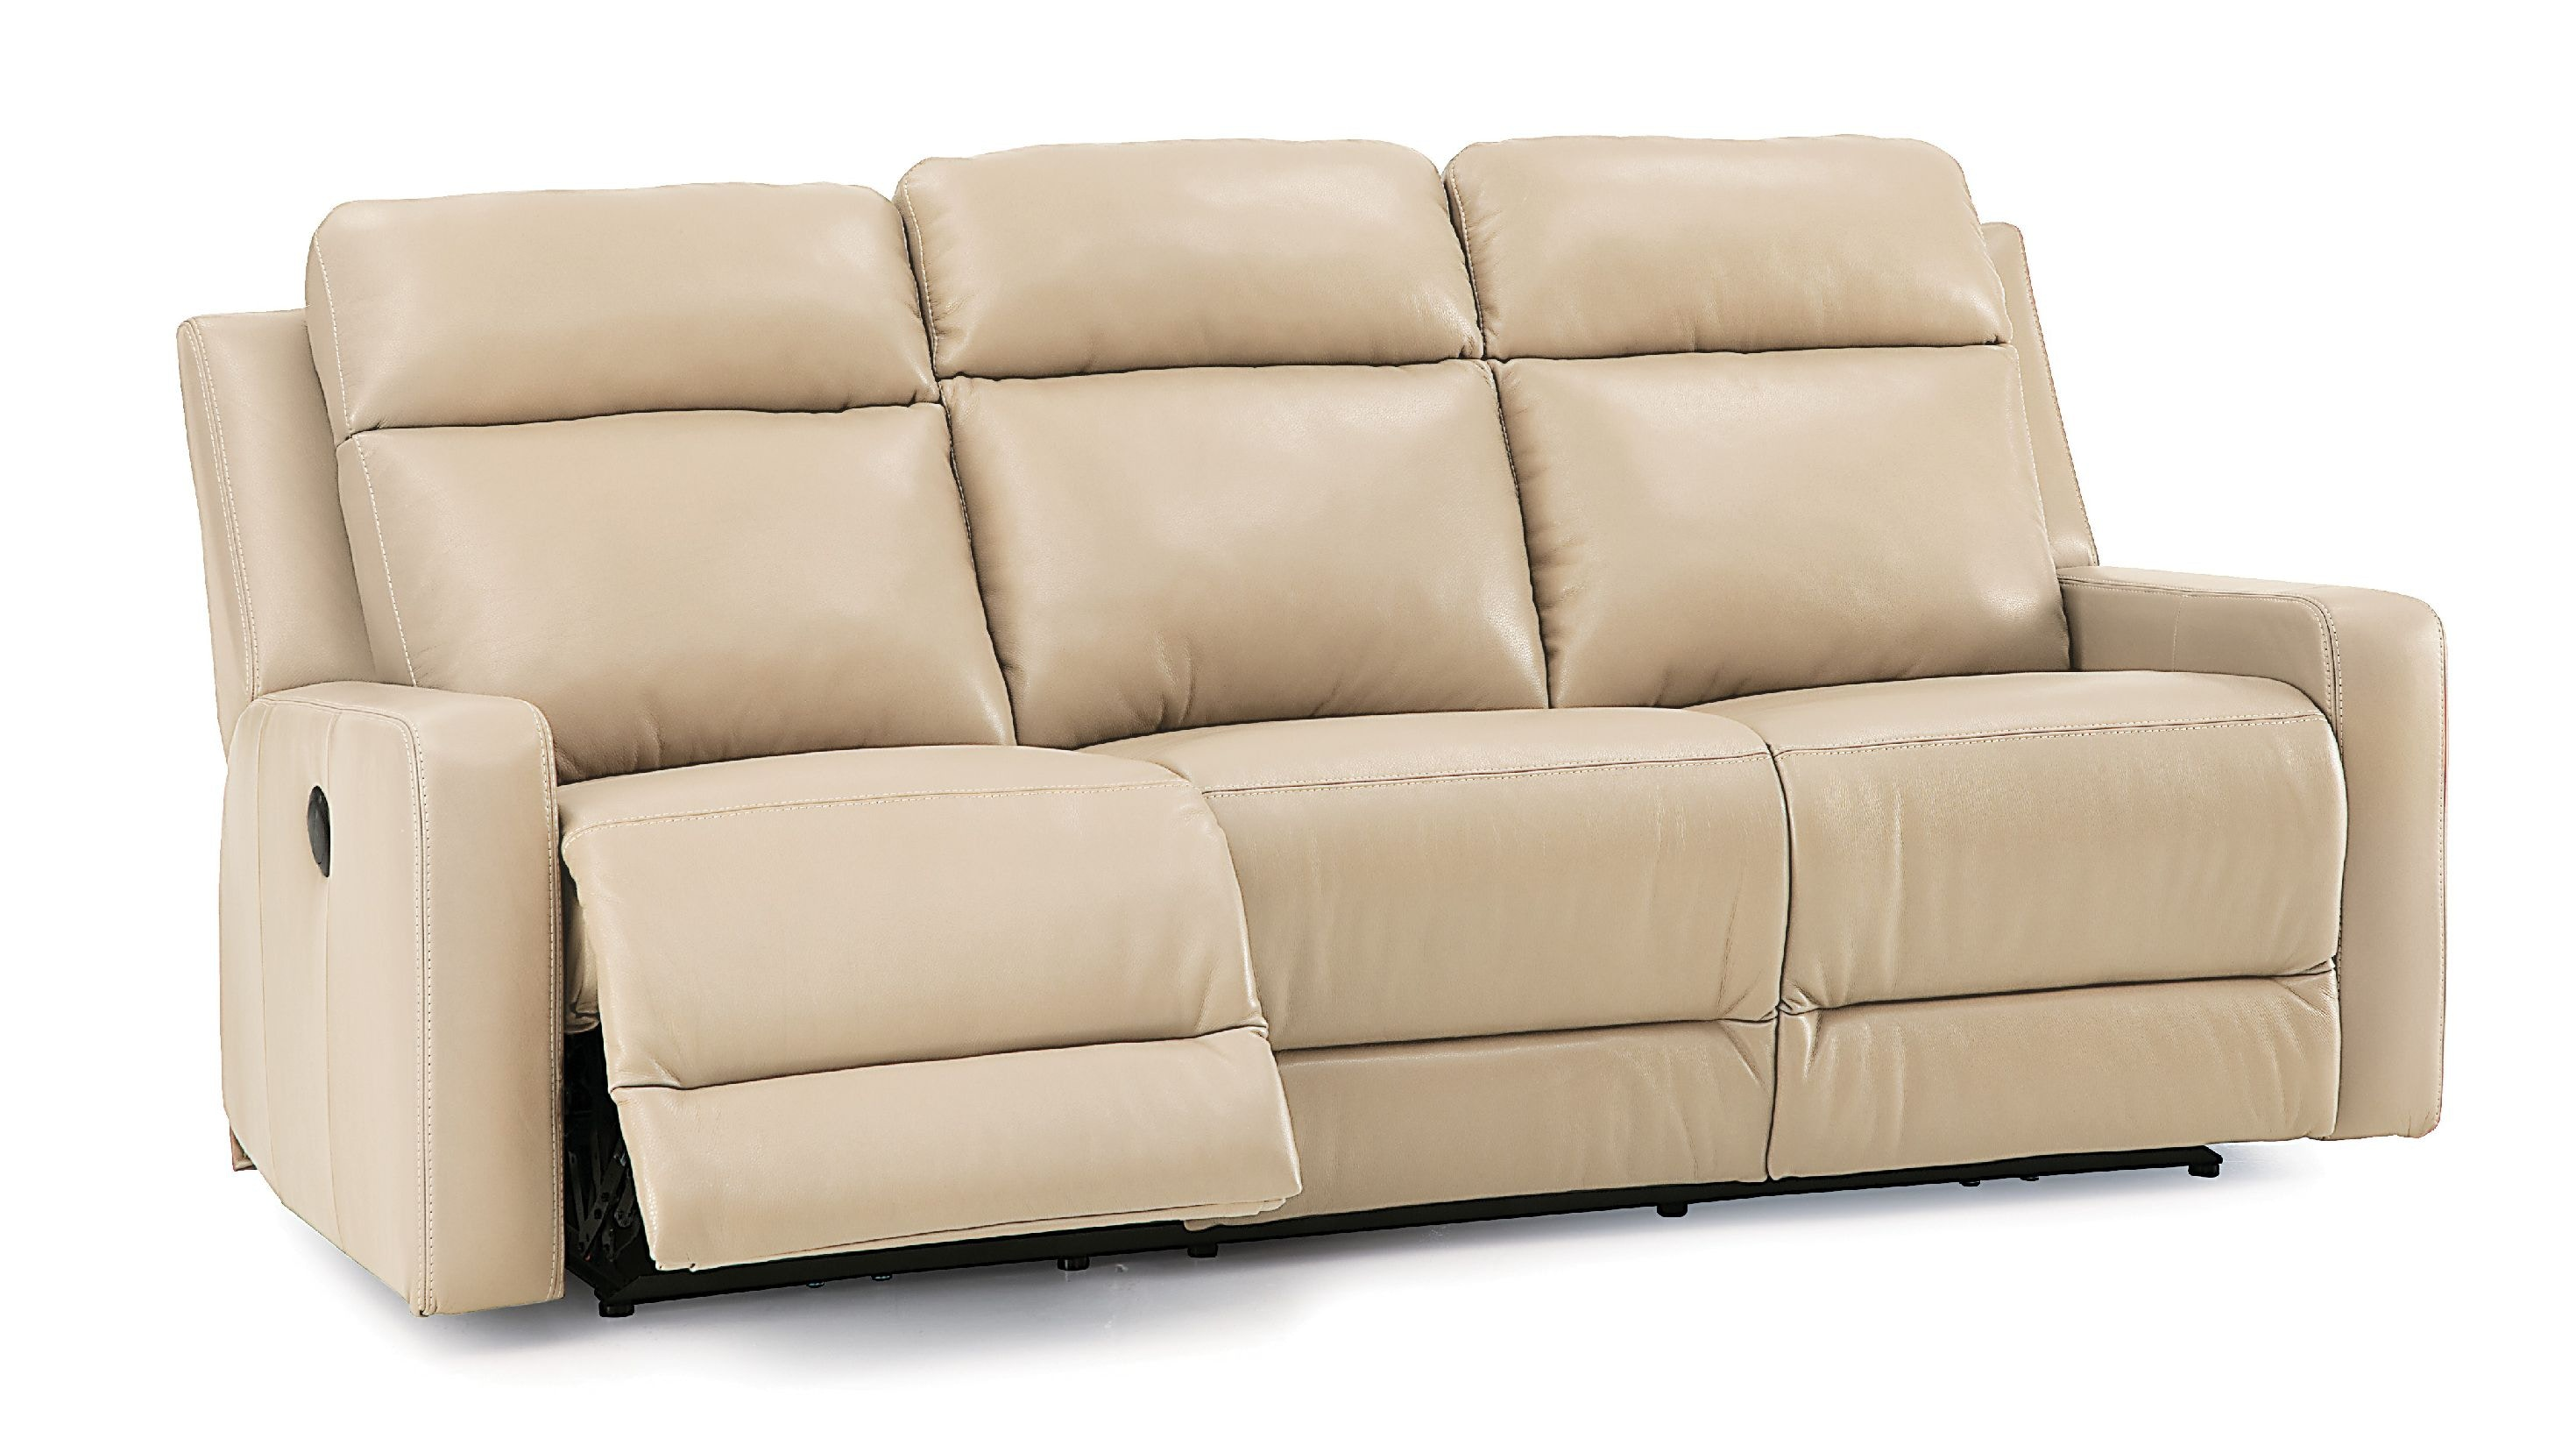 Genial Palliser Furniture Sofa Recliner 41032 51